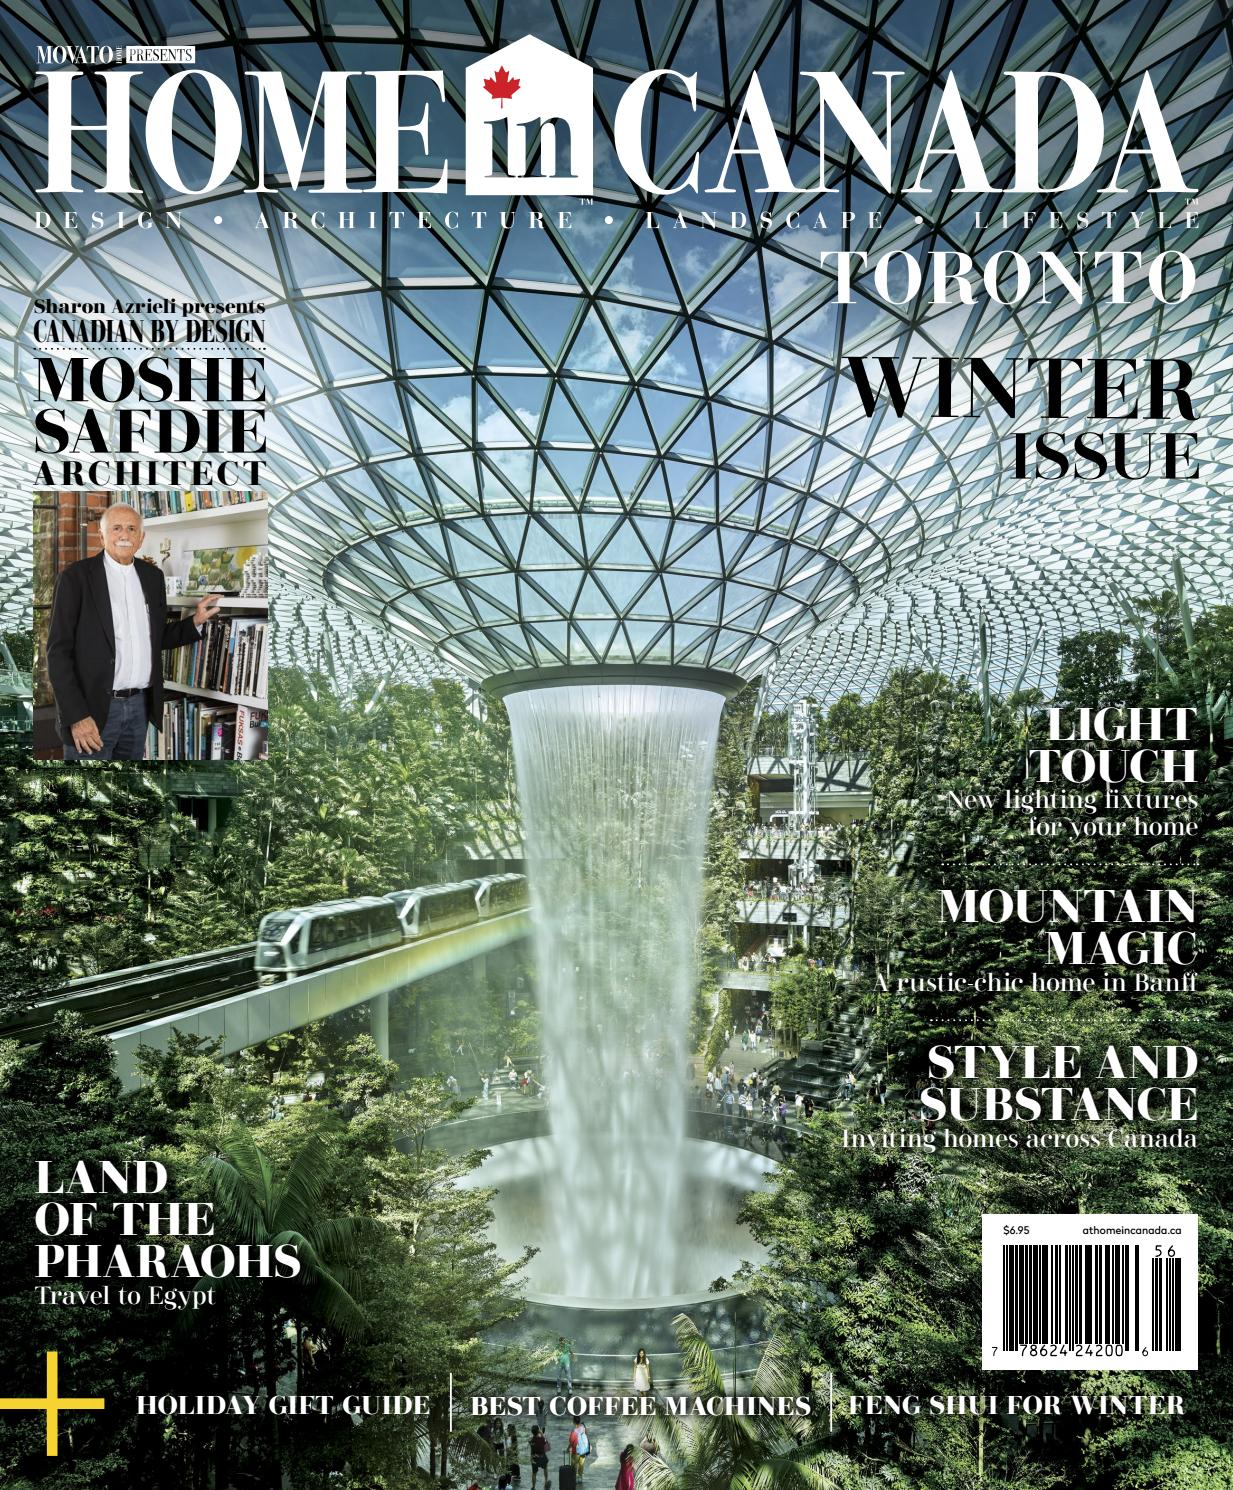 Home In Canada Toronto Winter 2019 By Home In Canada Design Architecture Landscape Lifestyle Issuu